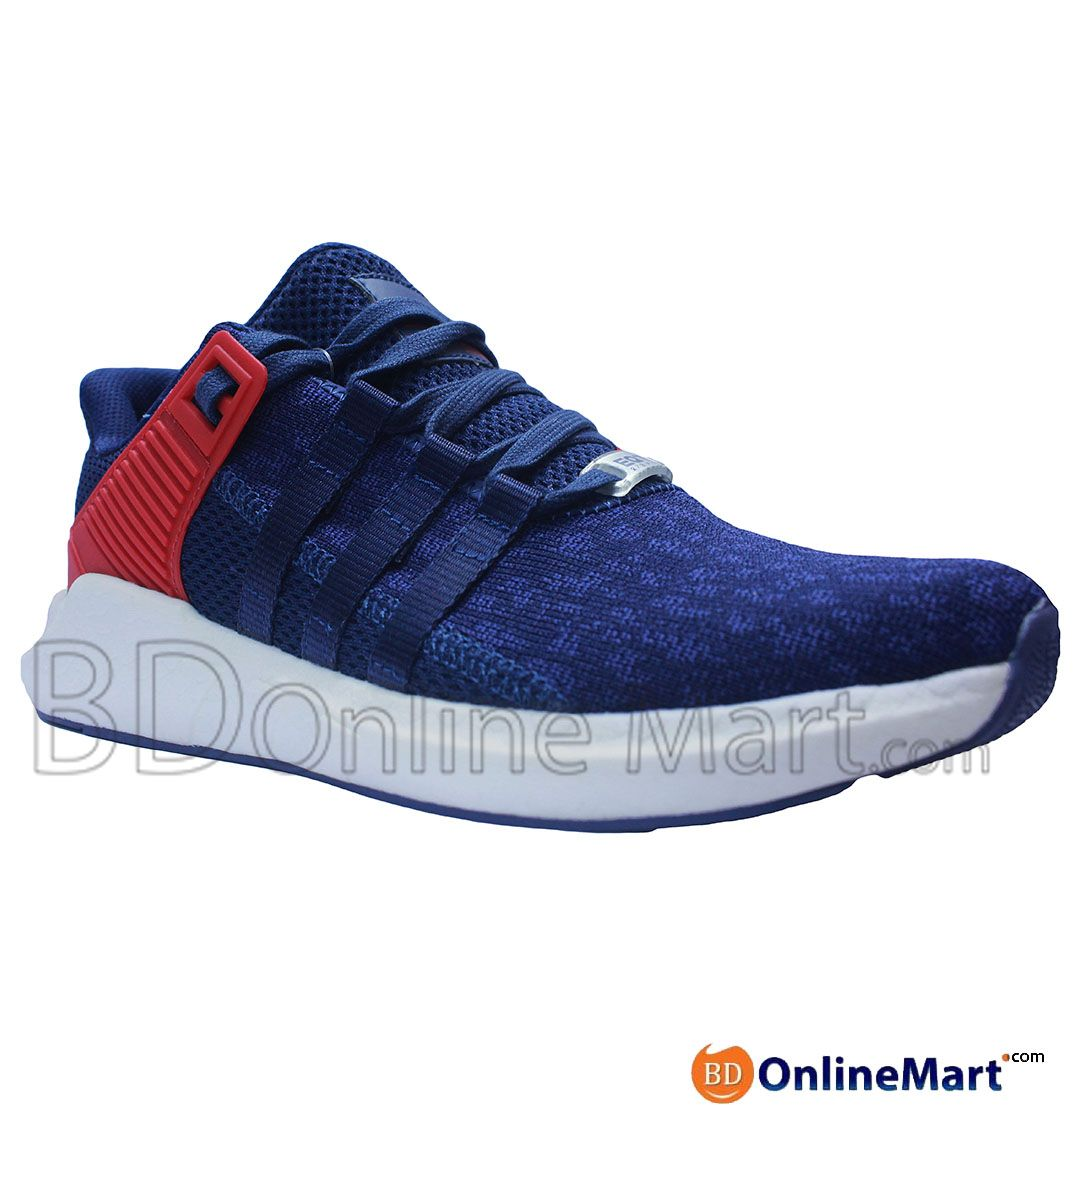 Buy adidas shoes @bdonlinemart Cash On Delivery Home Delivery